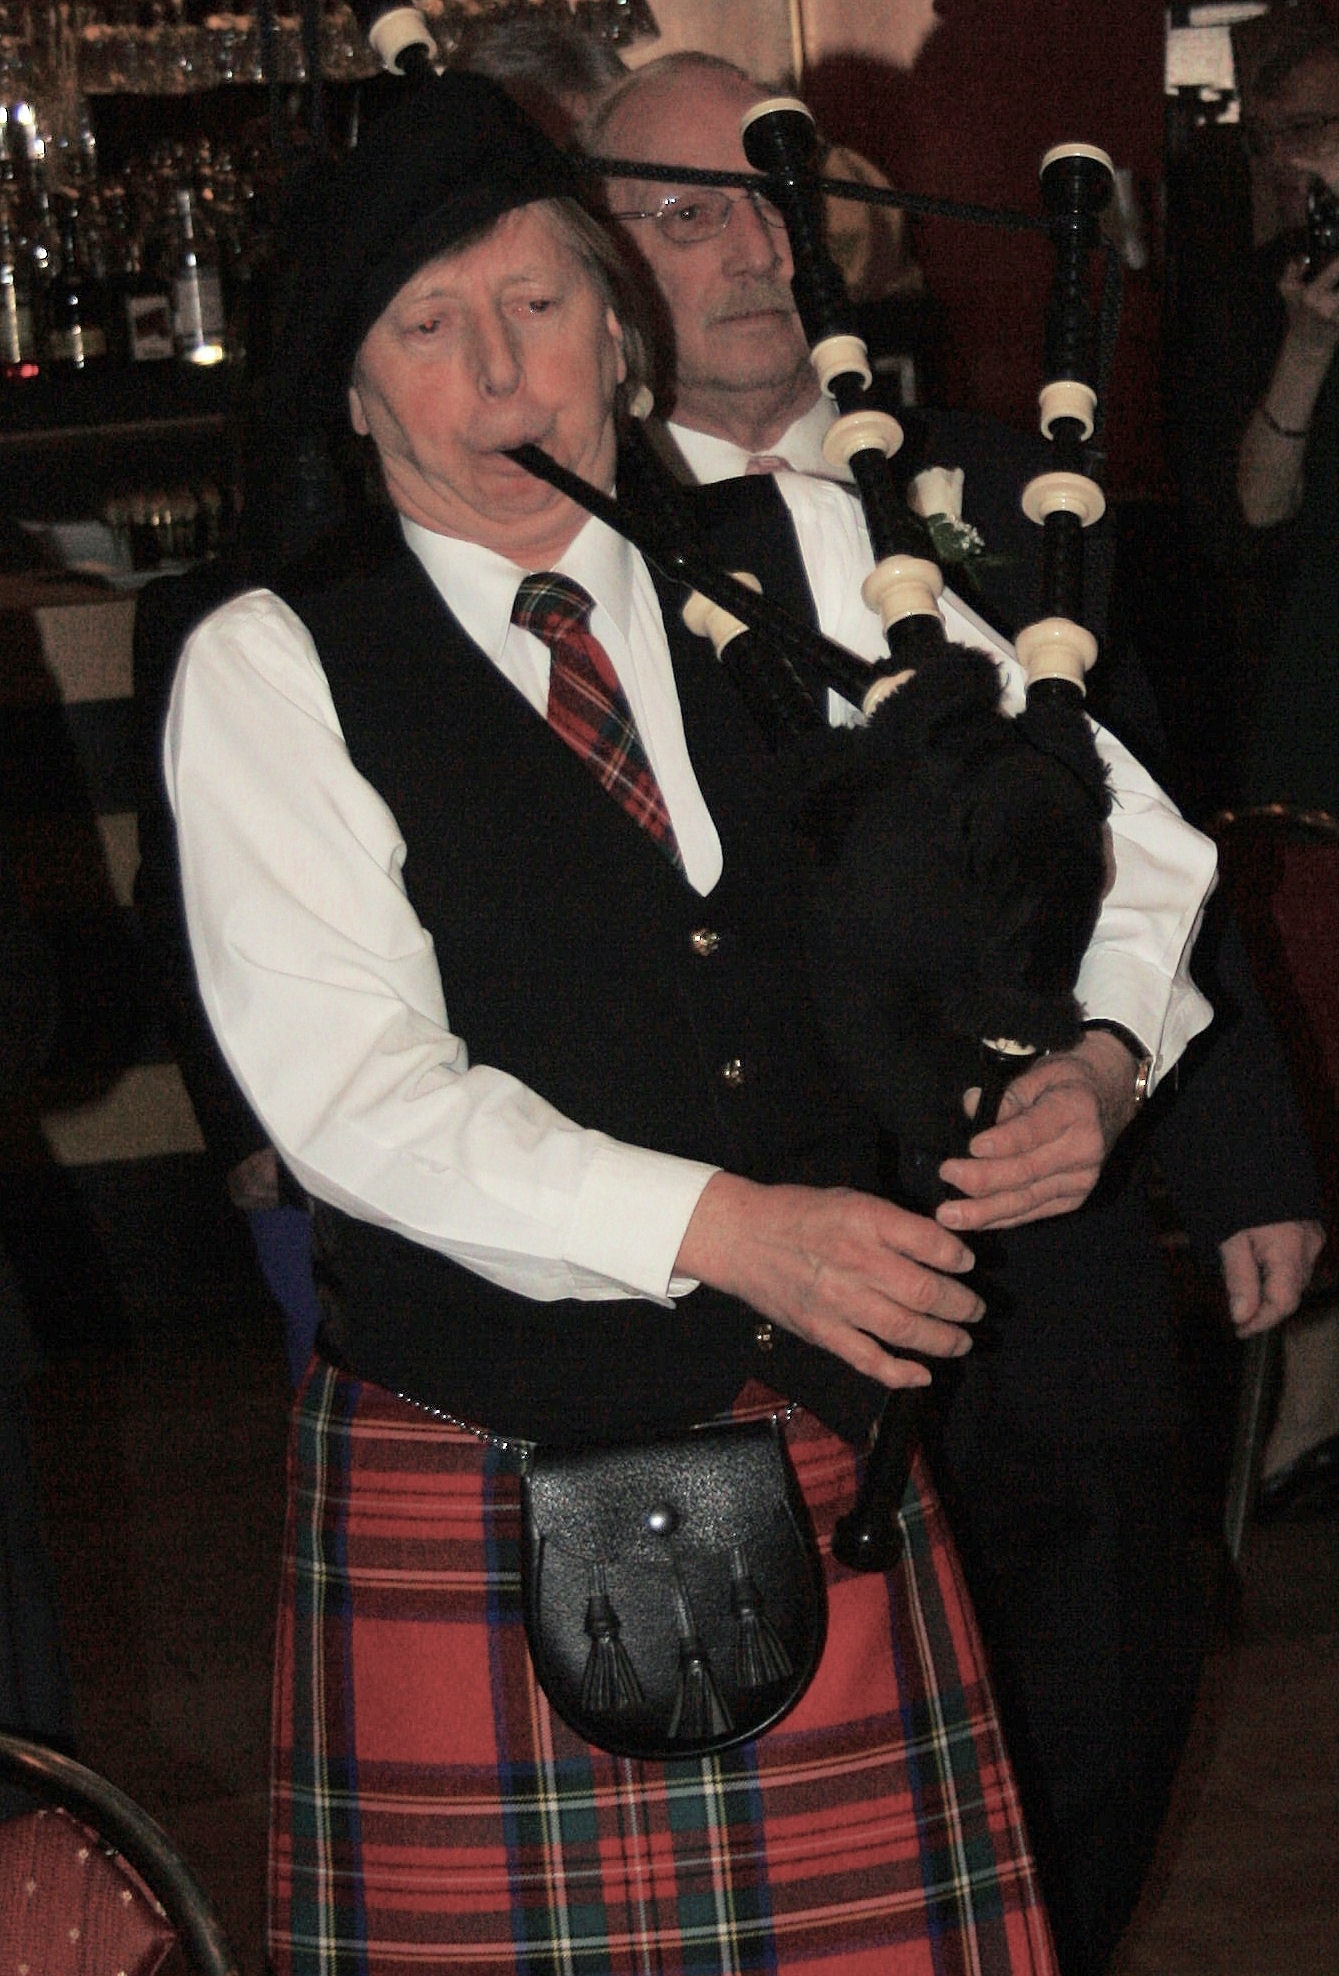 The Champions of Lifelong Learning escorted into Gala by a piper